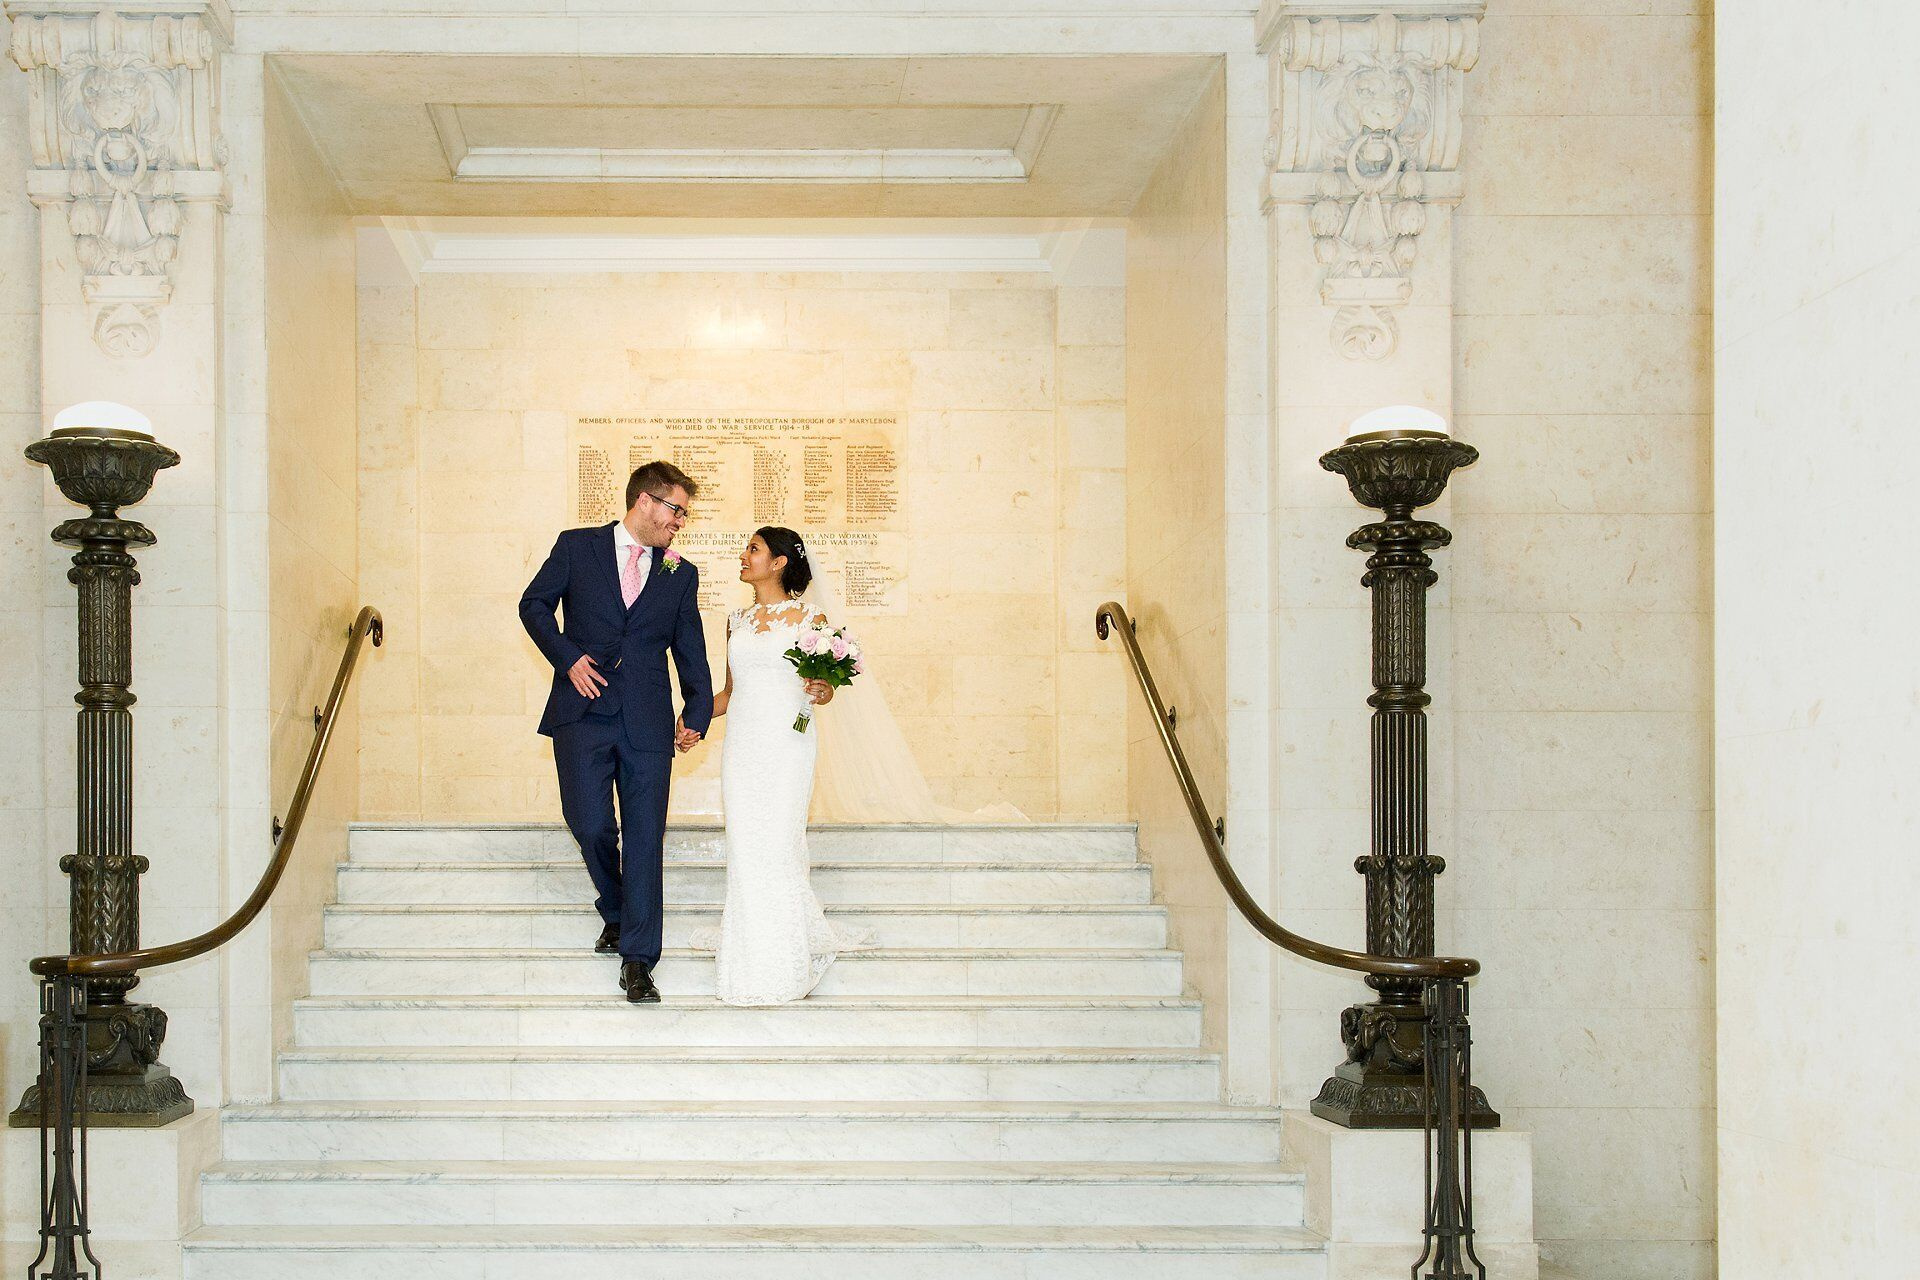 elopement wedding photogrpahy london couple walking down marble staircase at old marylebone town hall